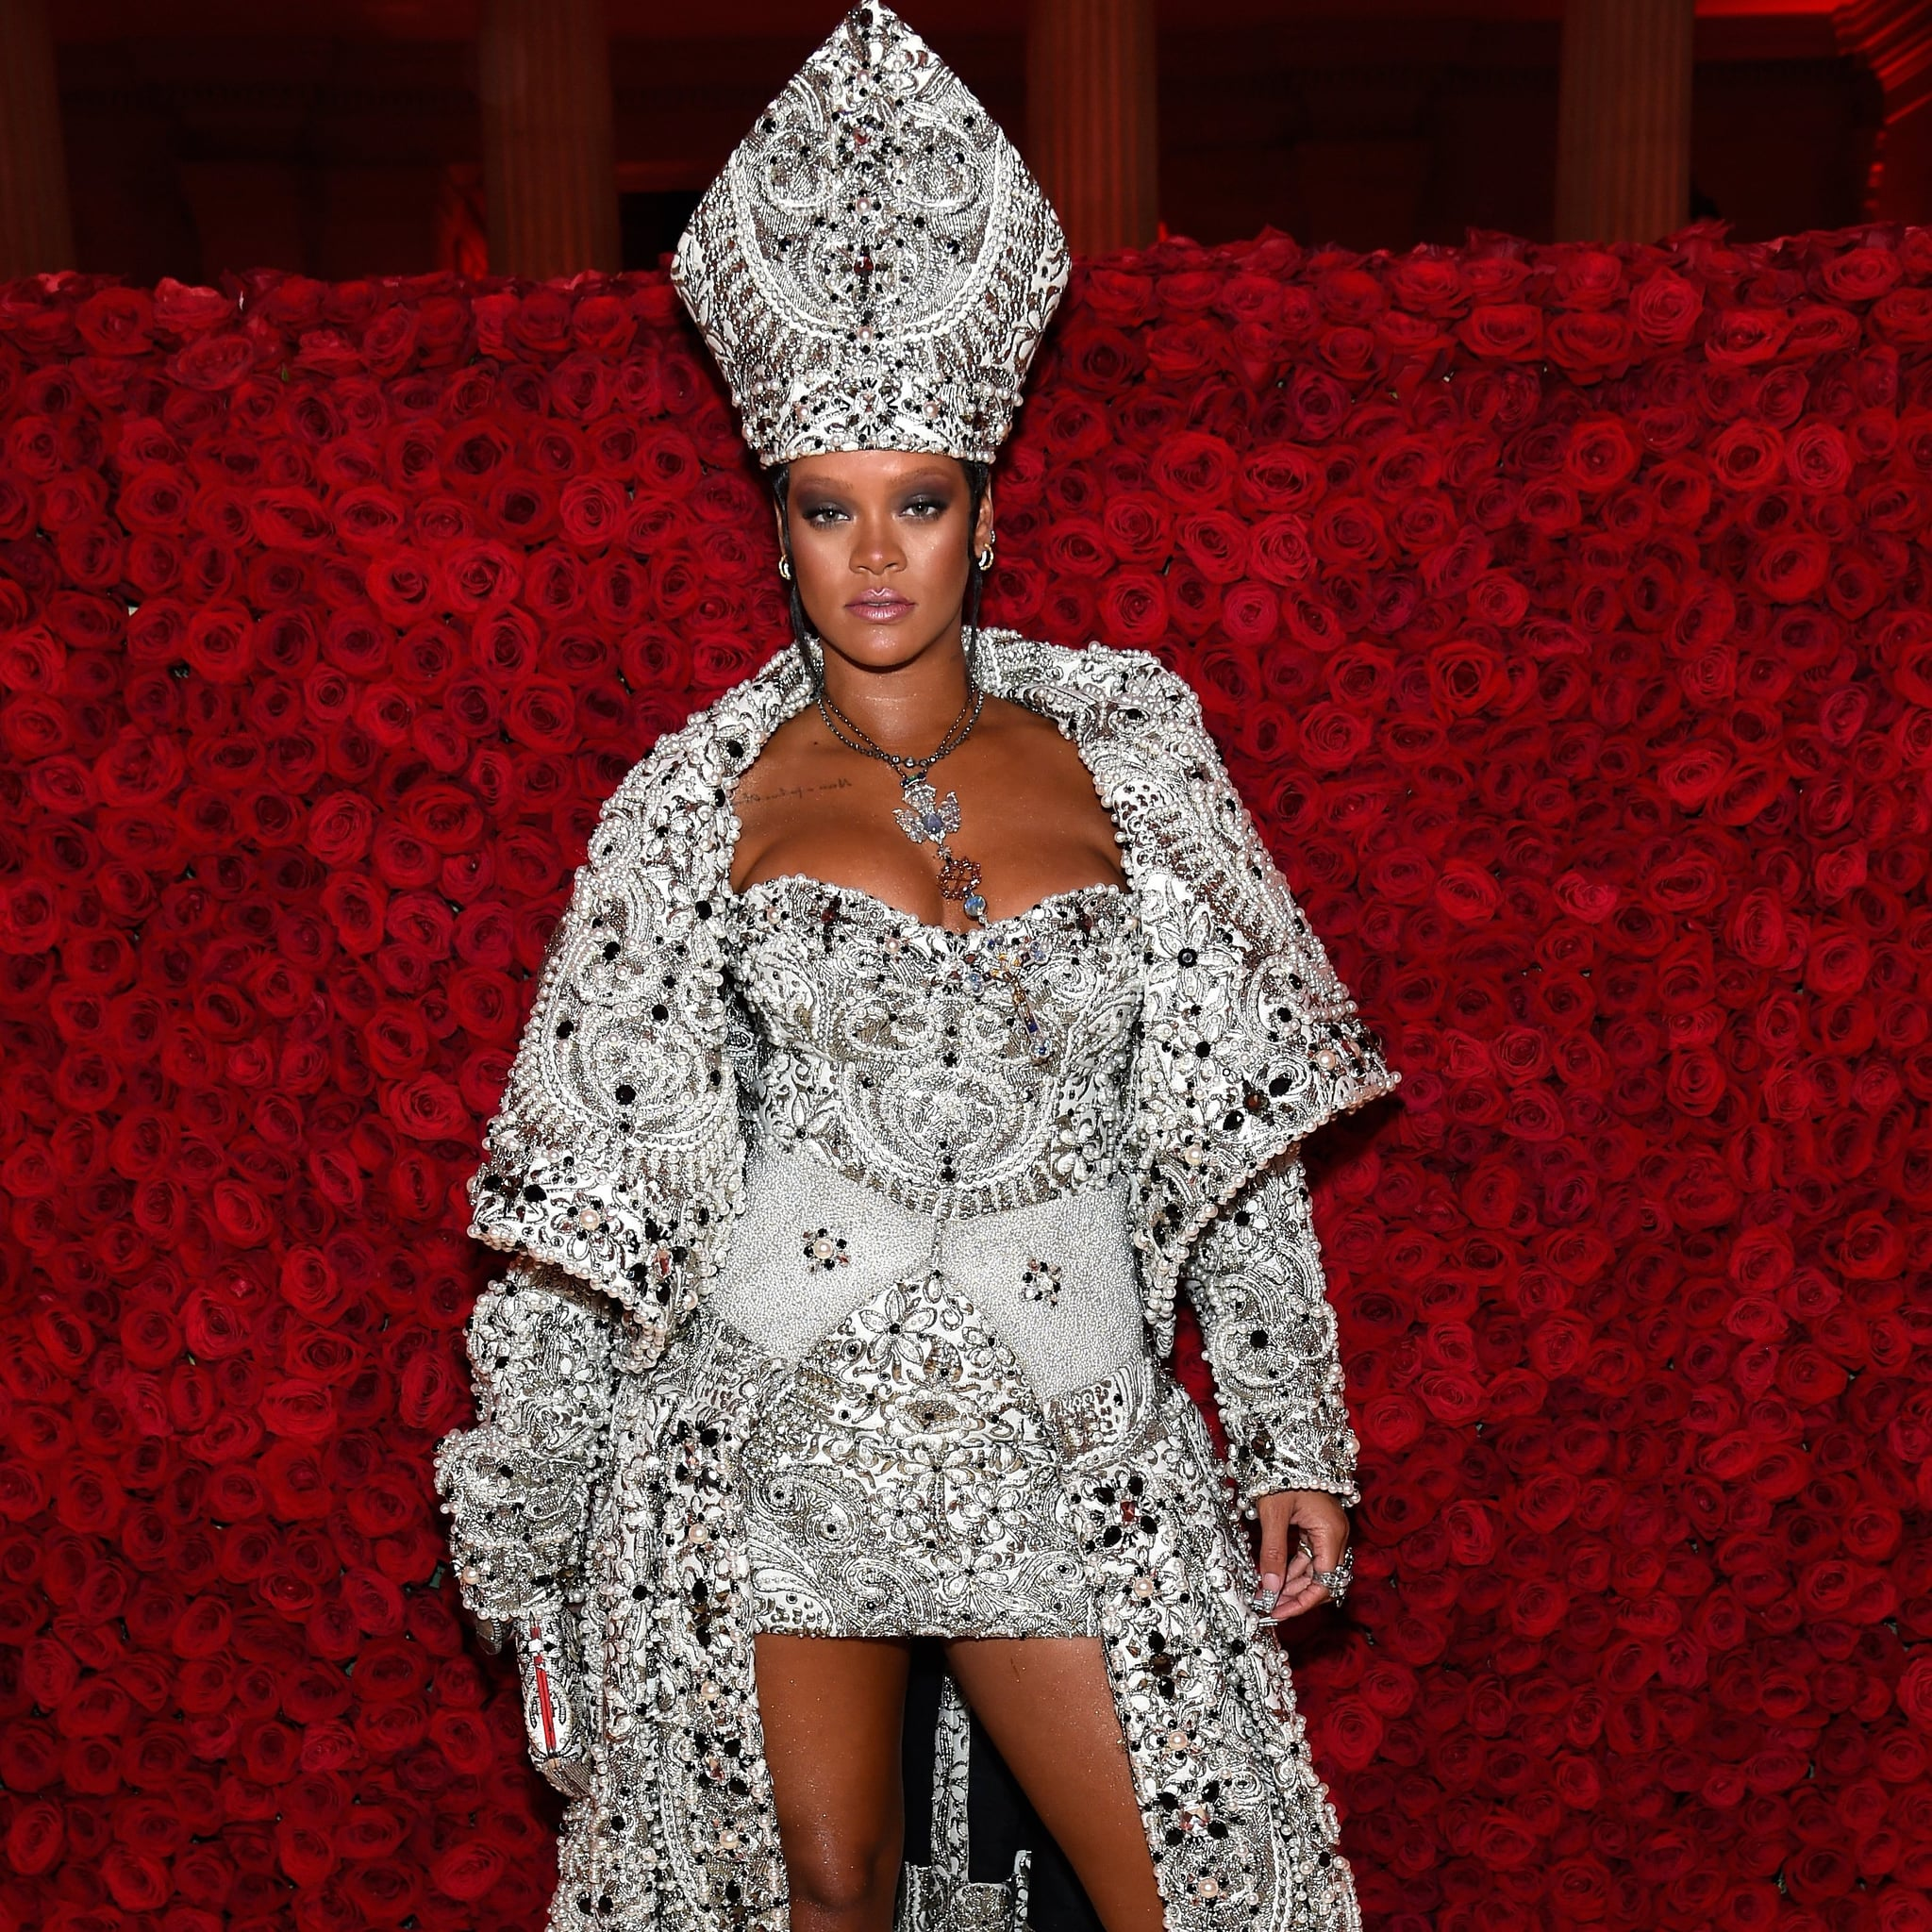 rihanna met gala 2018 halloween costume ideas | popsugar fashion